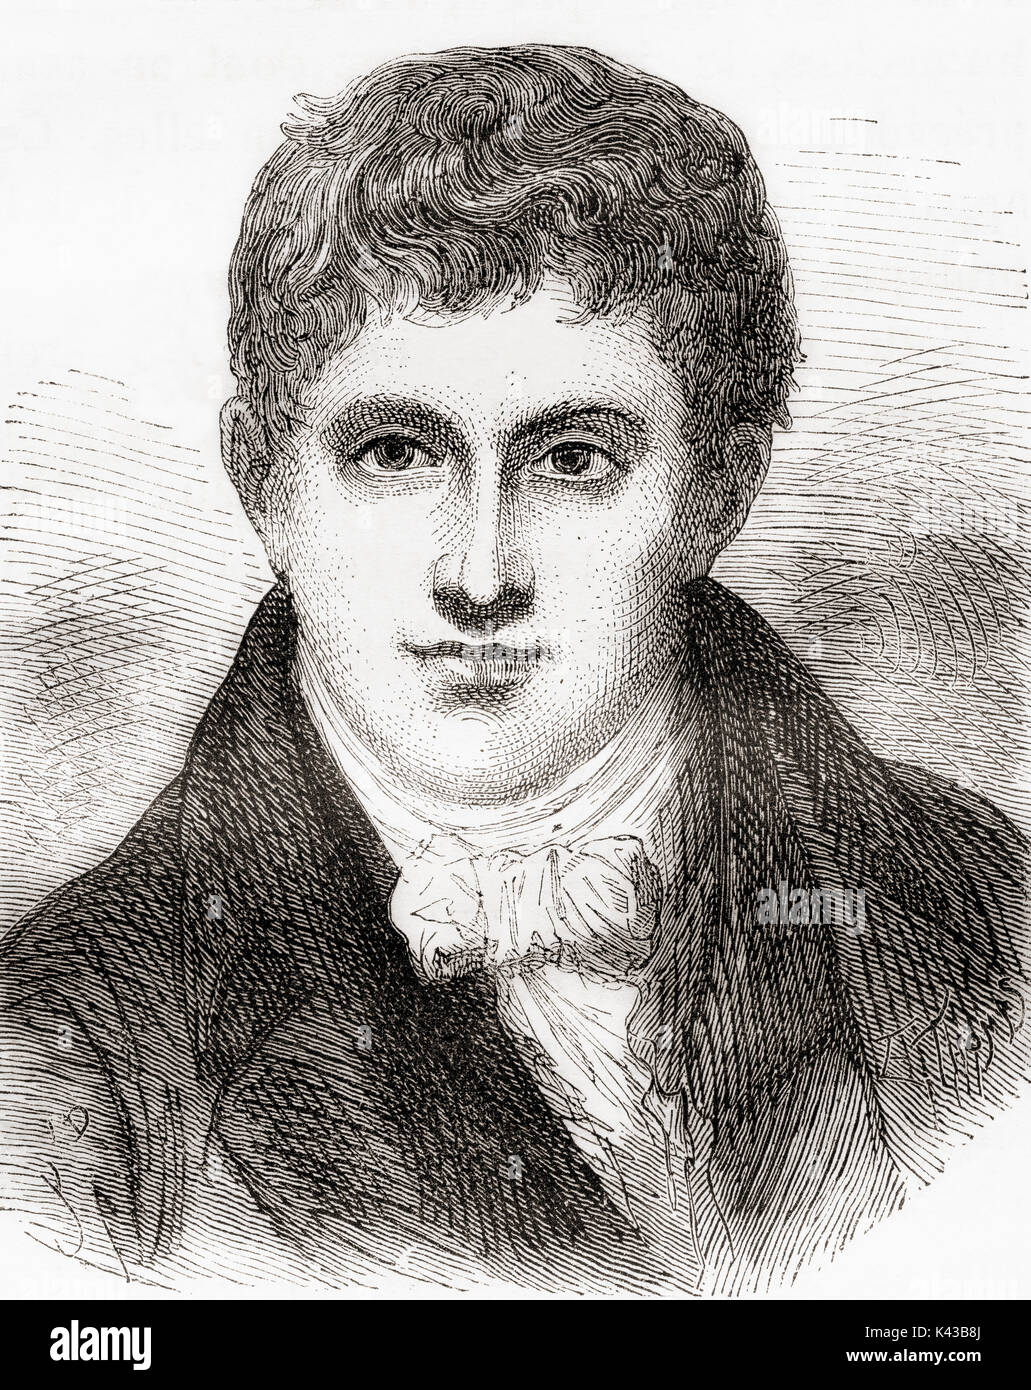 a biography of sir humphrey davy an english chemist Sir humphry davy fascinated rapturous crowds when he delivered his lectures in chemistry to the royal institution in london in the late 1700s and early 1800s and in sumptuous surroundings, davy.